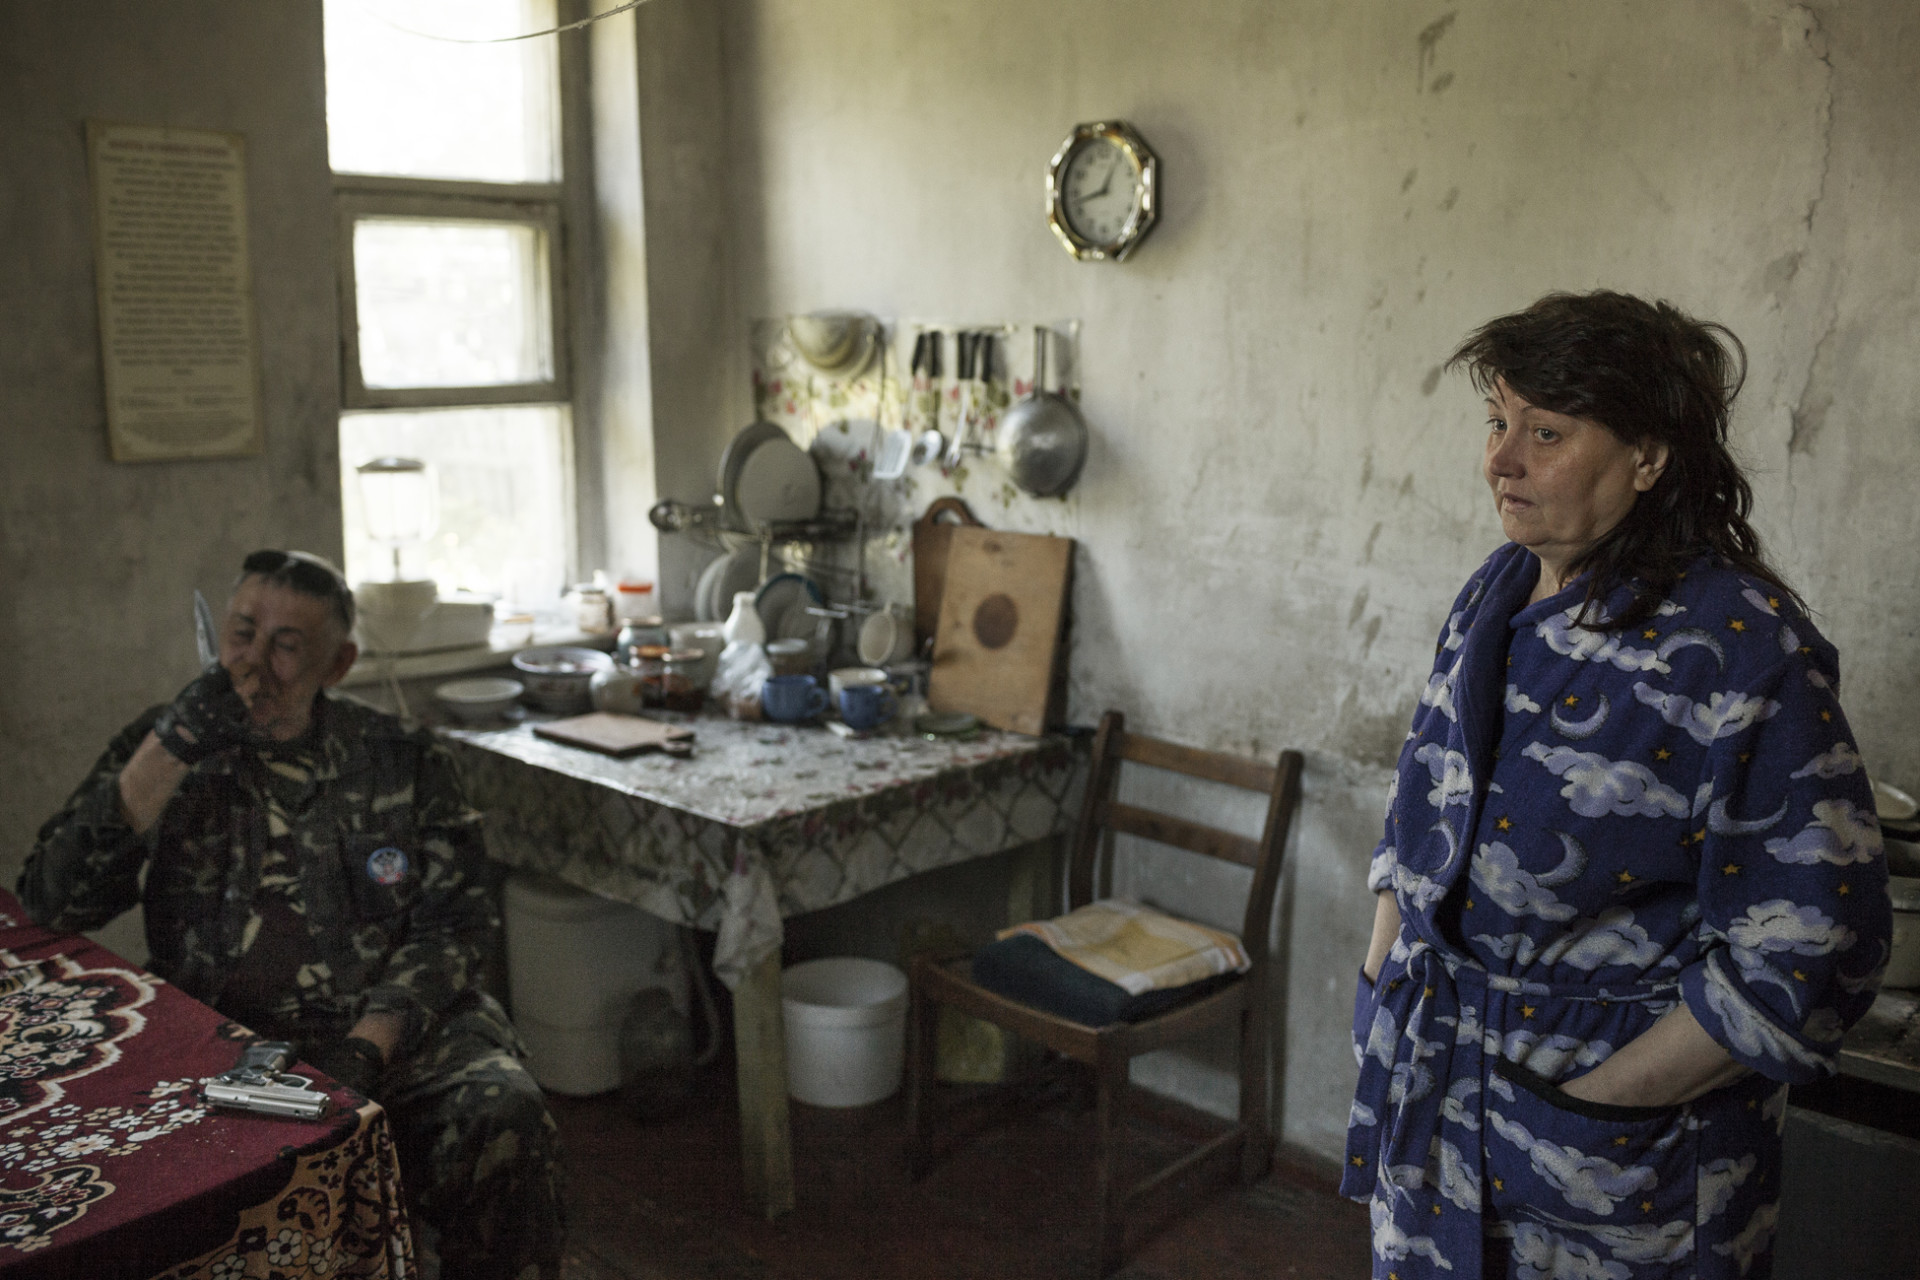 Gennady, a former Red Army spetznatz (special forces soldier) who was in charge of security at the occupied Rada, with his wife at their house on the outskirts of Donetsk.